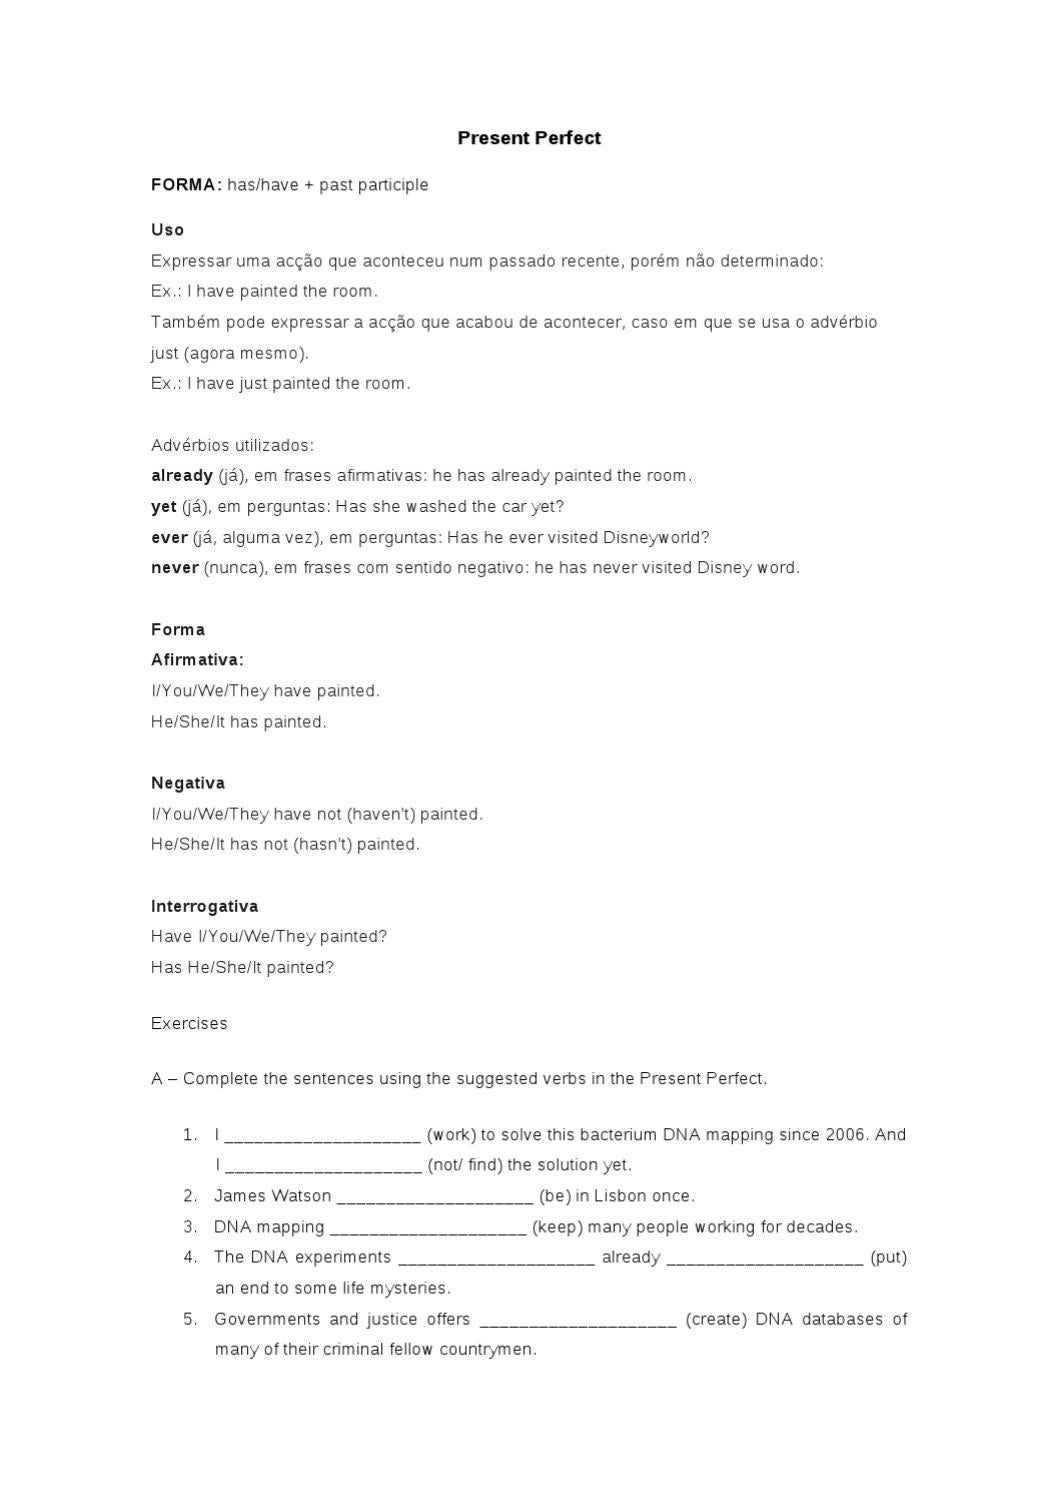 Present Perfect Exercises By Mj R Issuu